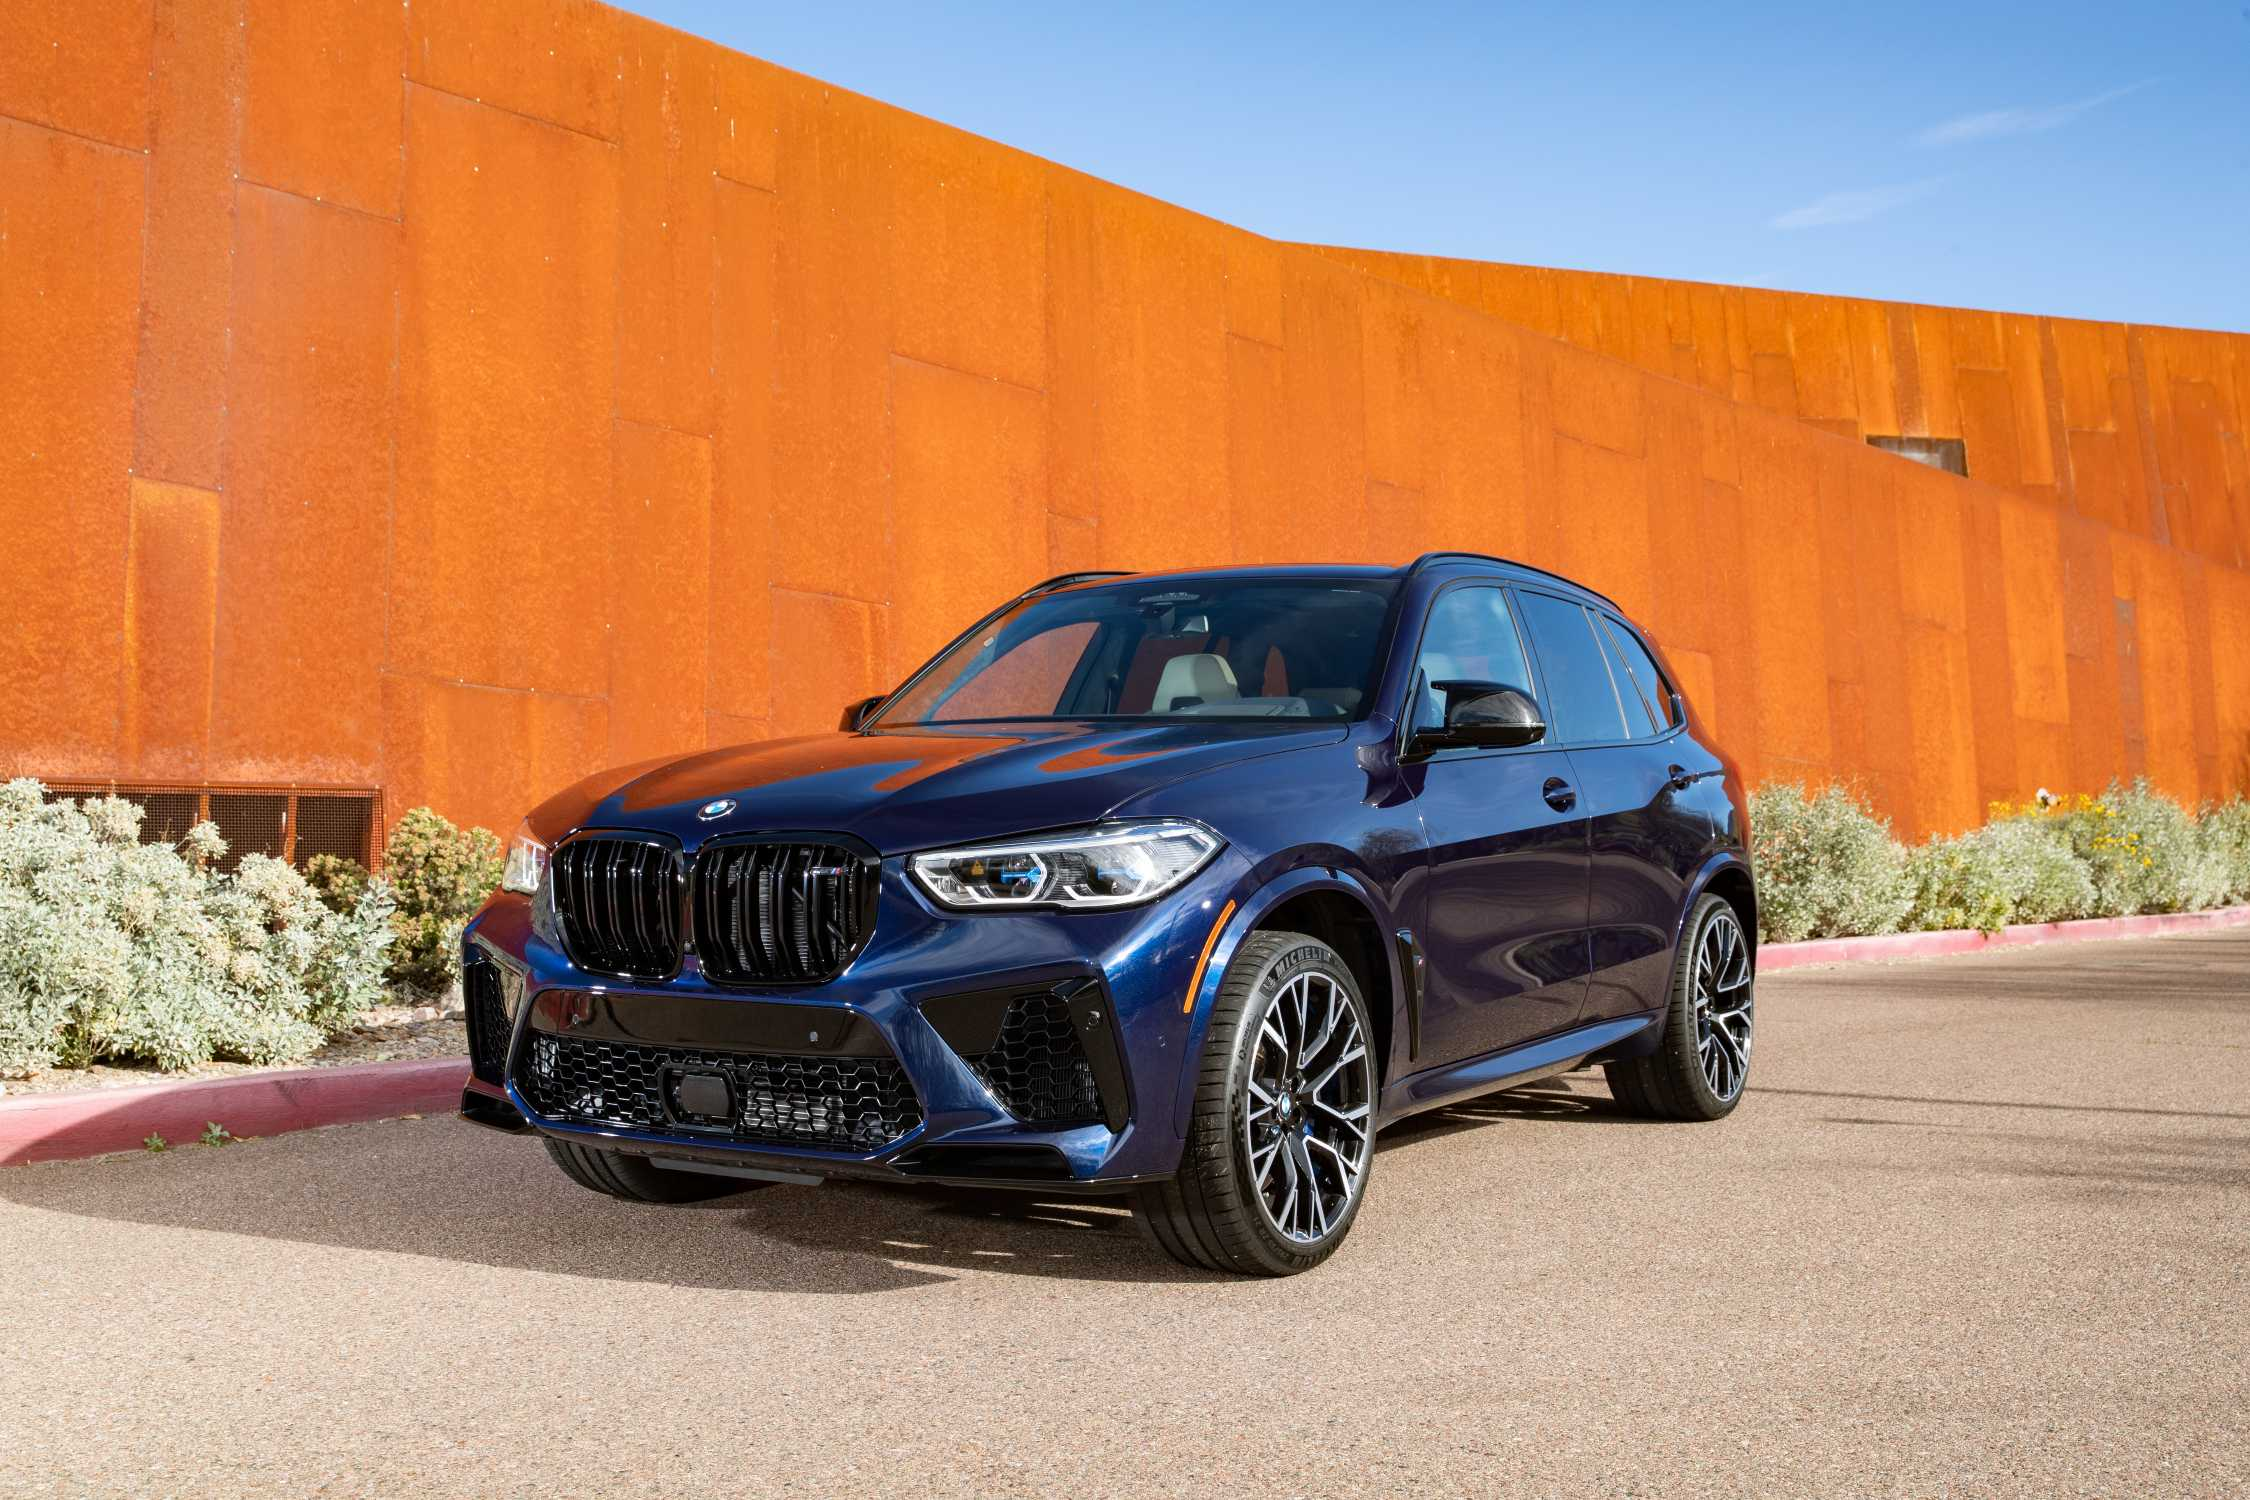 The All New Bmw X5 M Competition In Colour Tanzanit Blue Metallic And 21 22 M Light Alloy Wheels Star Spoke Style 809 M Bicolor Mixed Tyres Phoenix Arizona 02 2020